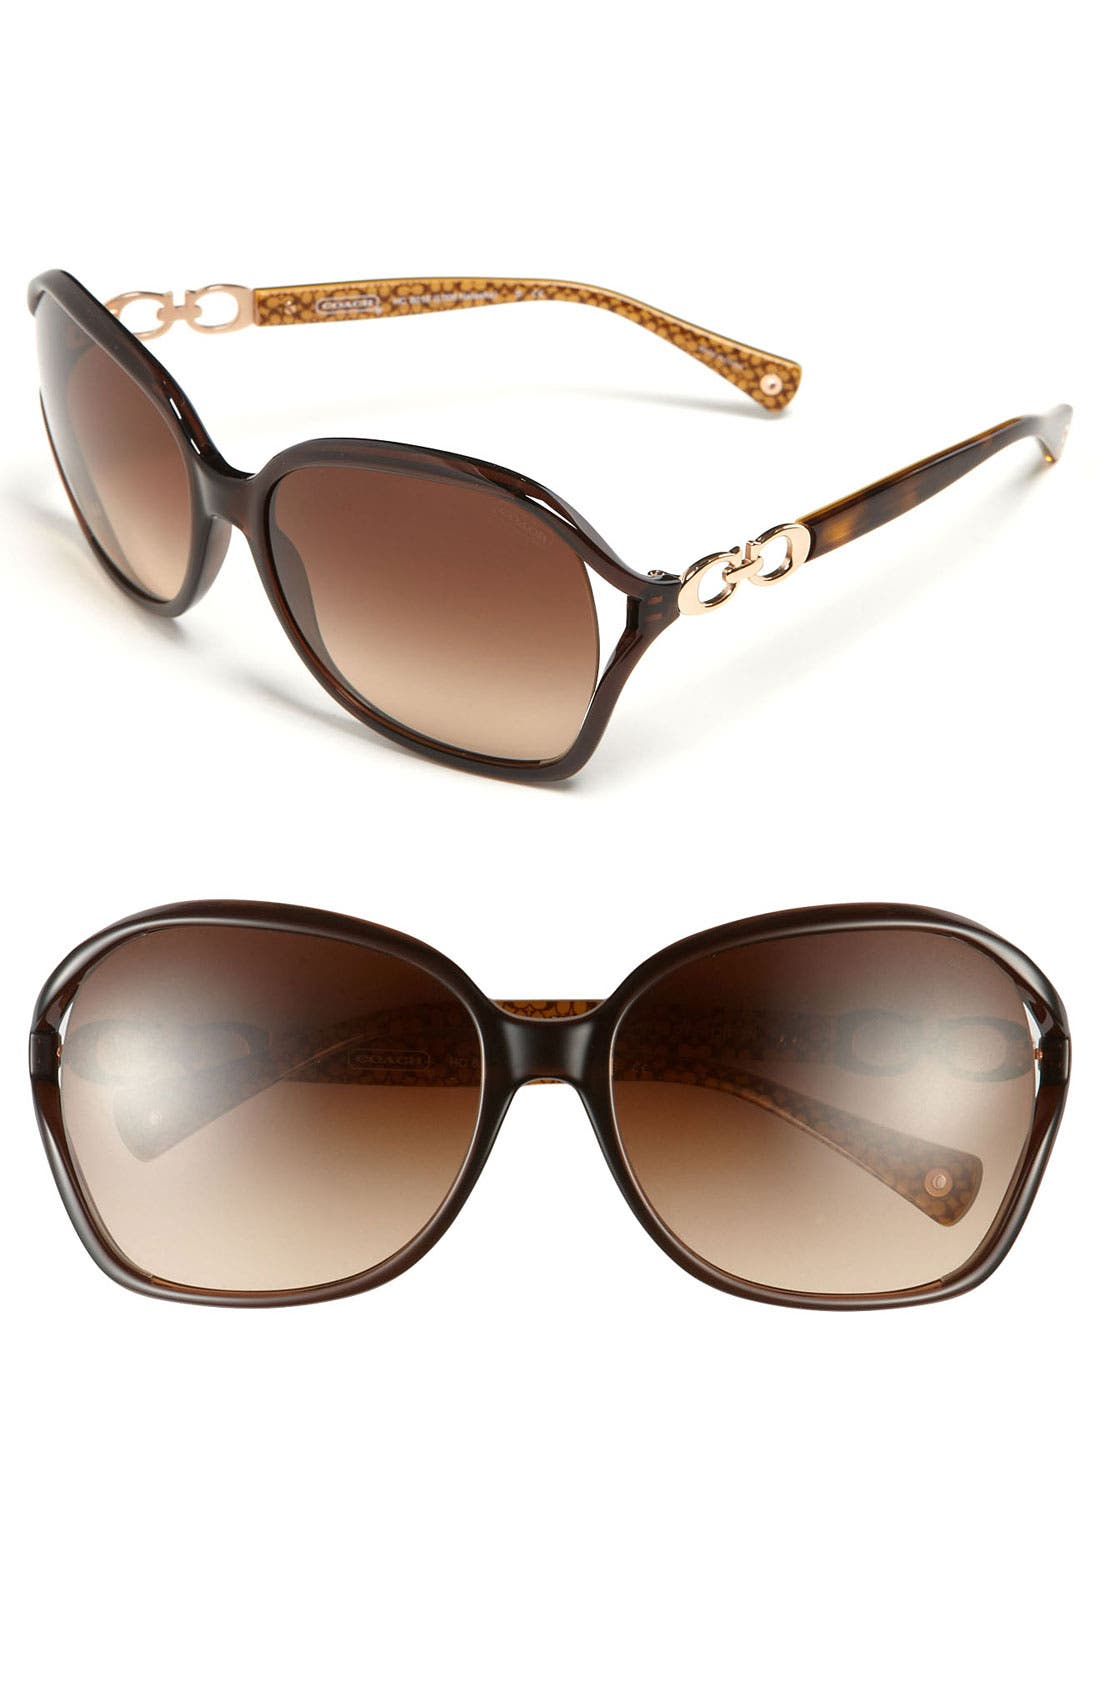 Alternate Image 1 Selected - COACH Oversized Sunglasses